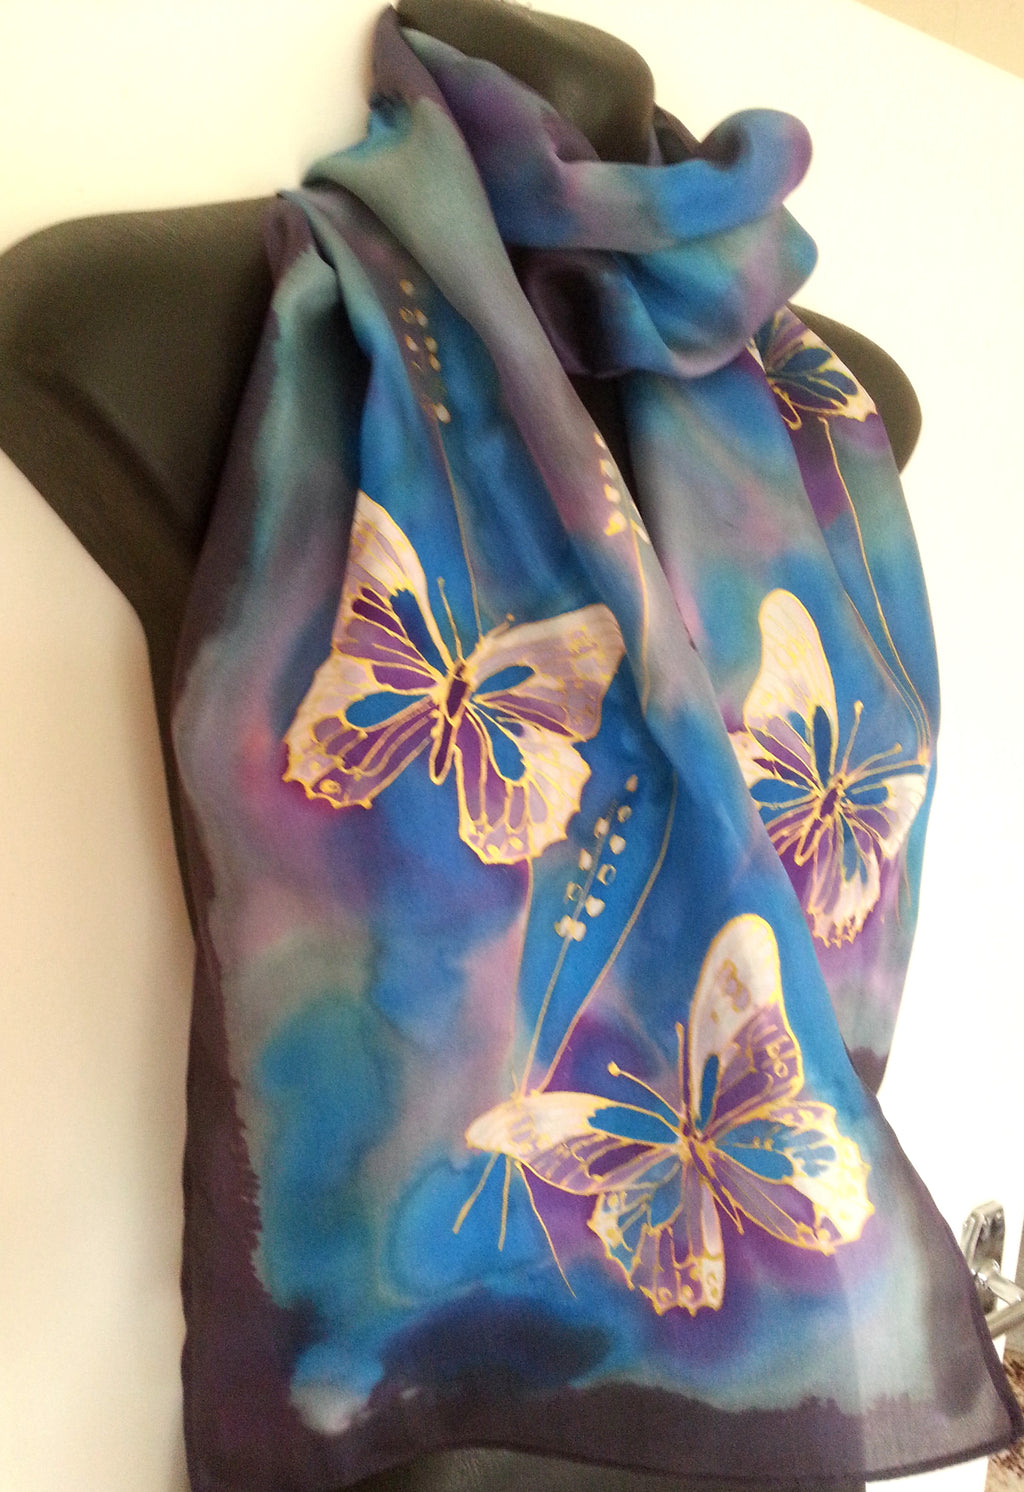 Gold Filigree Butterfly Hand Painted Silk Scarf - Satherley Silks NZ